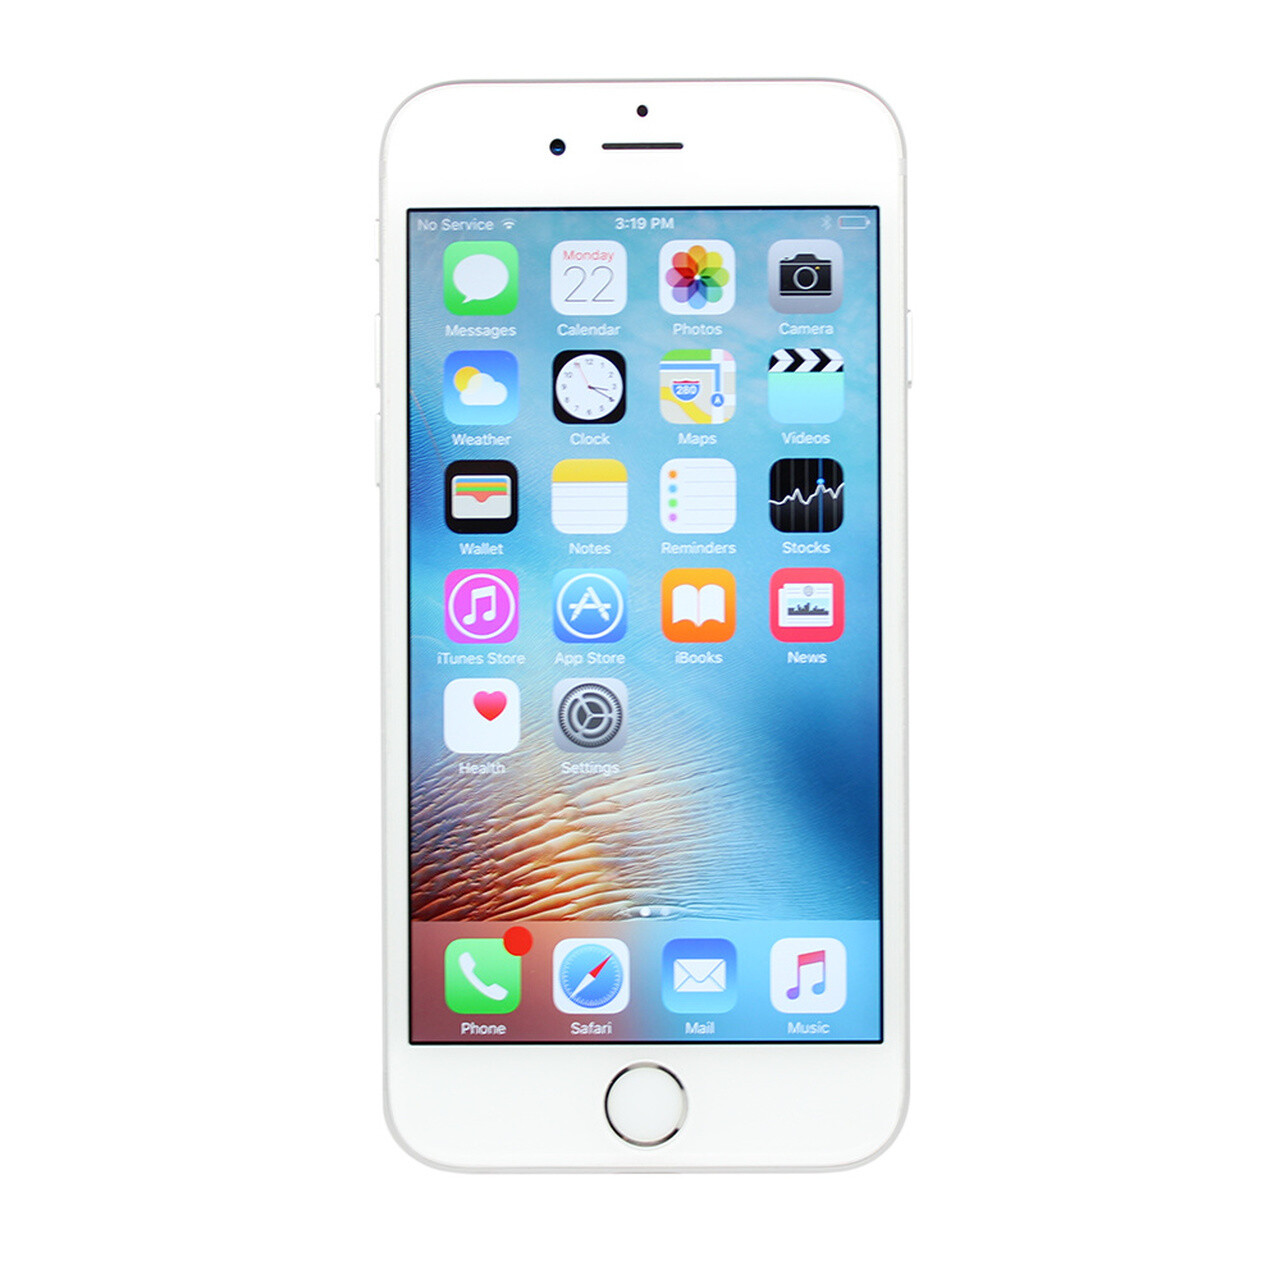 Apple iPhone 6s Plus a1687 32GB CDMA/GSM Unlocked -Very Good